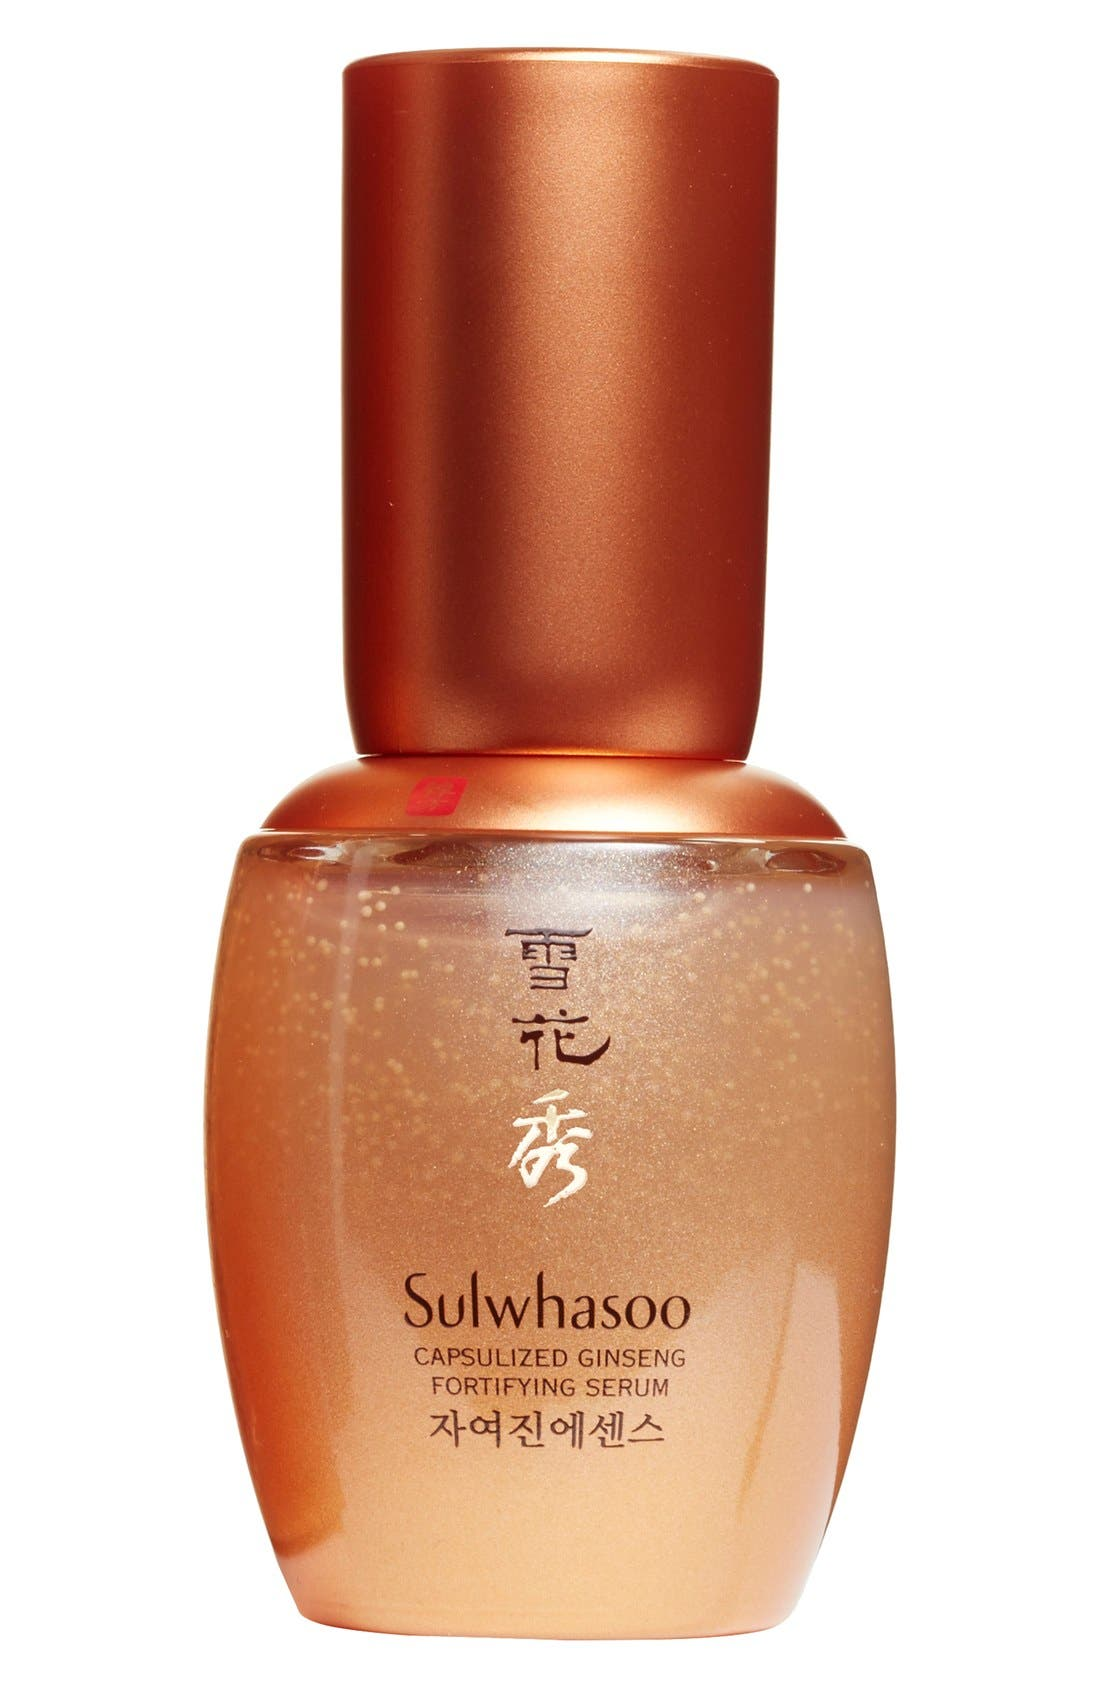 Sulwhasoo Capsulized Ginseng Fortifying Serum